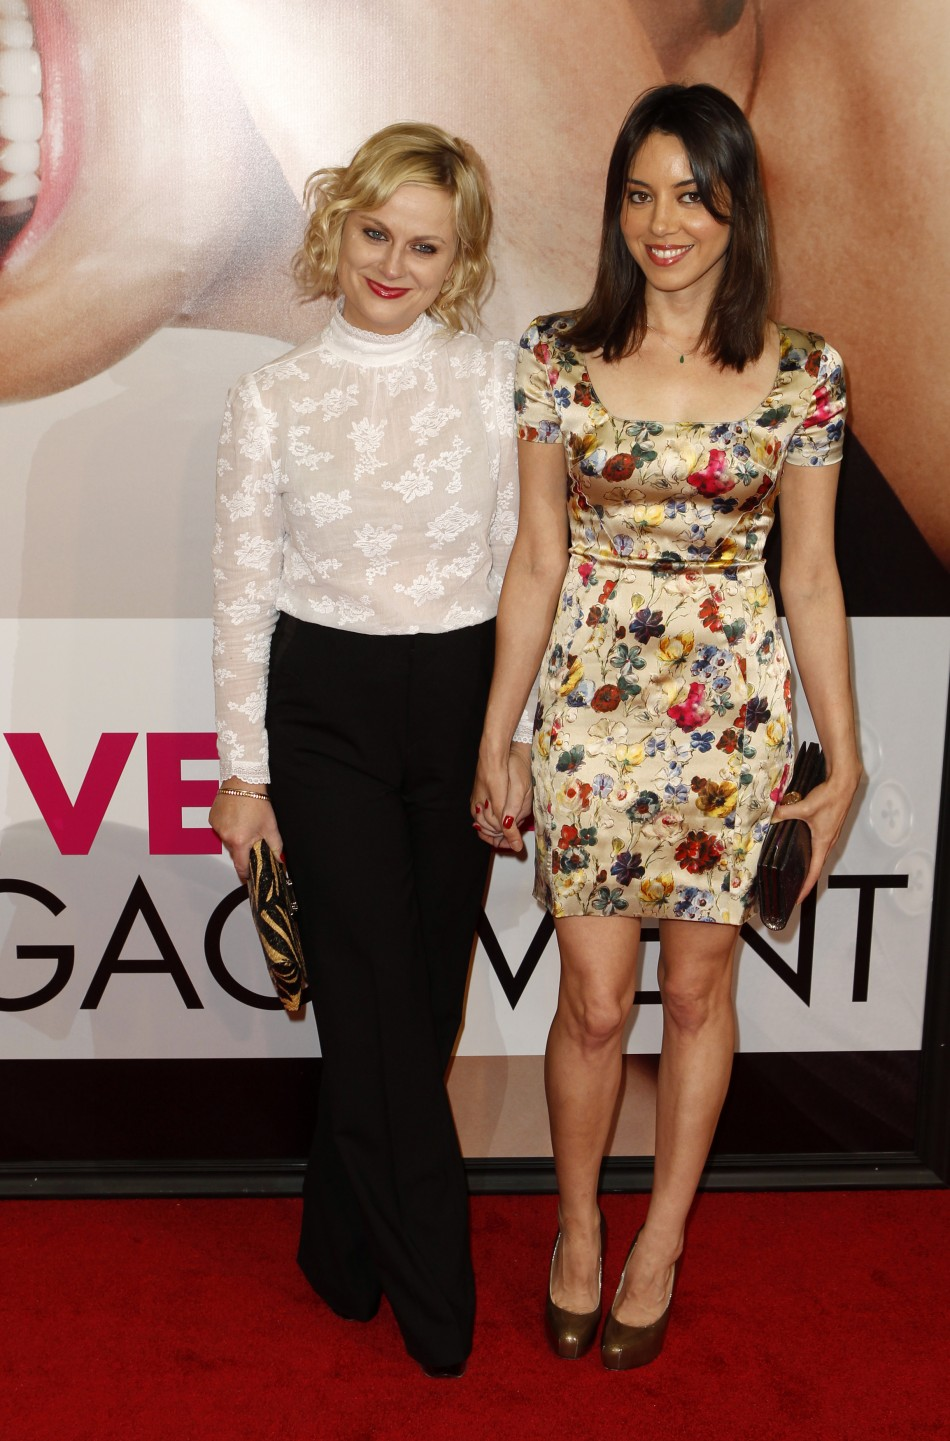 Actress Amy Poehler arrives with Aubrey Plaza for the premiere of the film quotThe Five-Year Engagementquot to begin the 2012 Tribeca Film Festival in New York